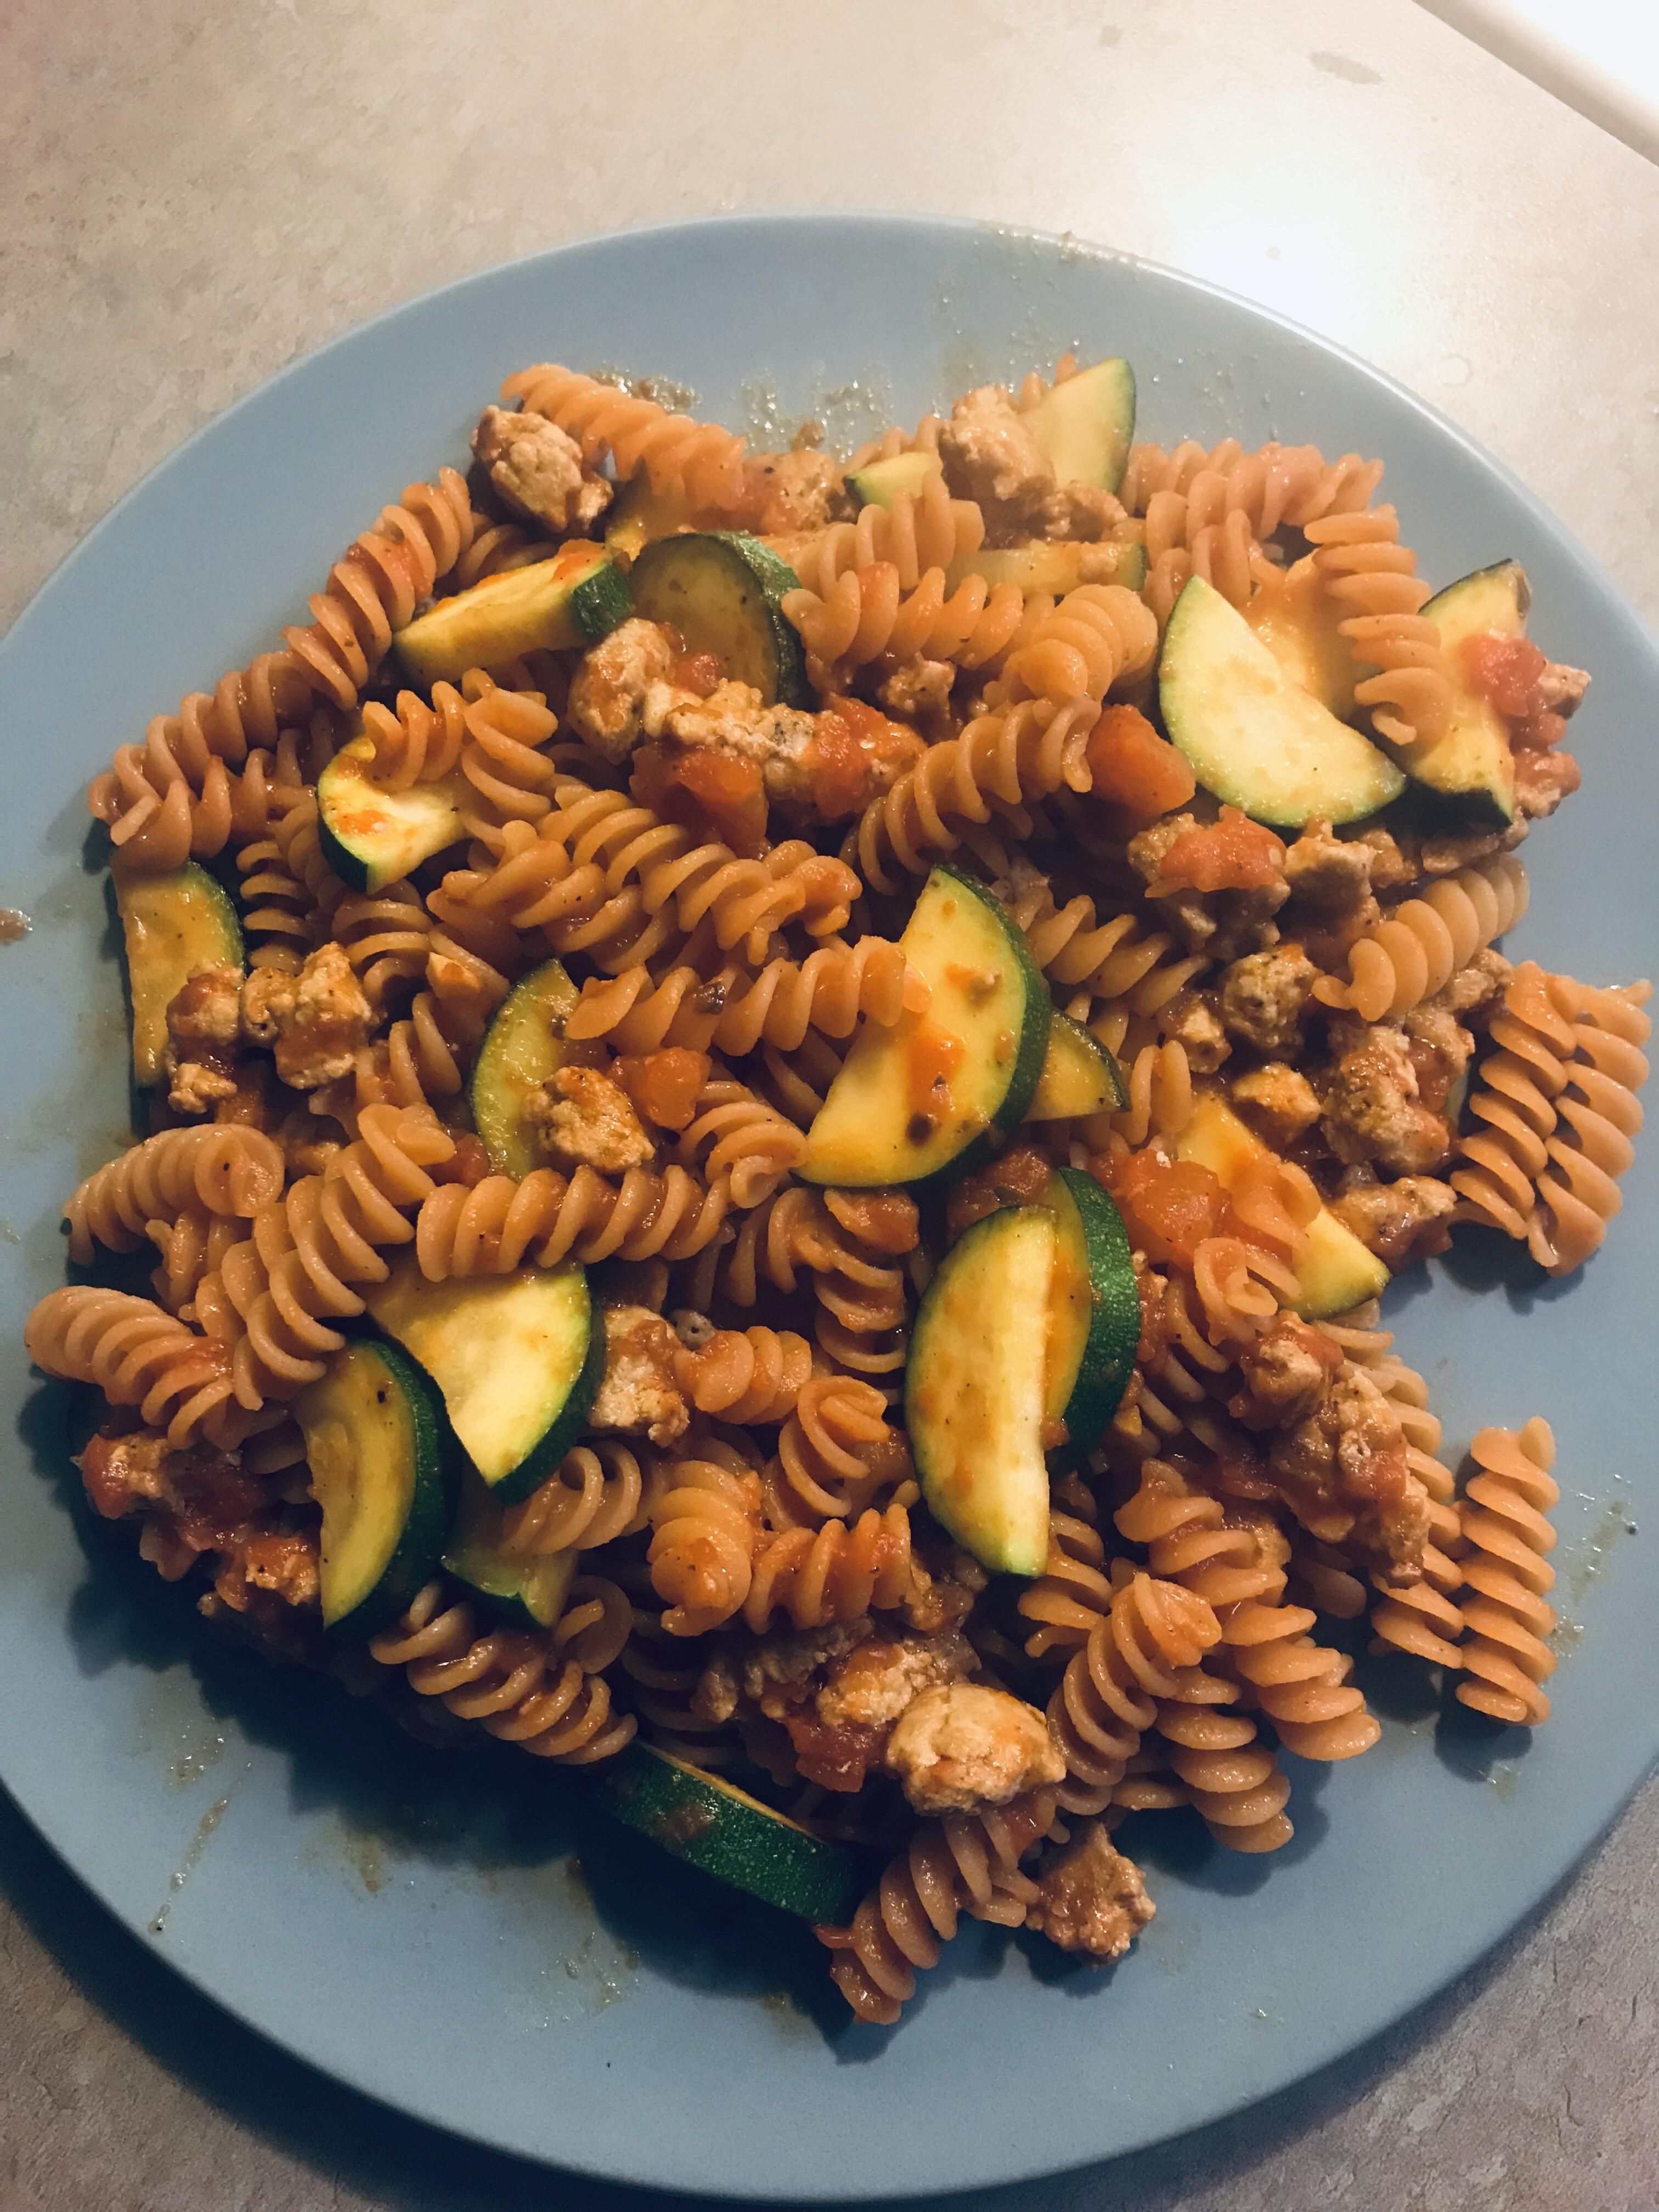 Sharone Sapir On Instagram Let S Frt Red Lentil Pasta From Simple Carbs To Complex Carbs Pasta Now Takes Mutiple Forms Th Red Lentil Lentil Pasta Lentils